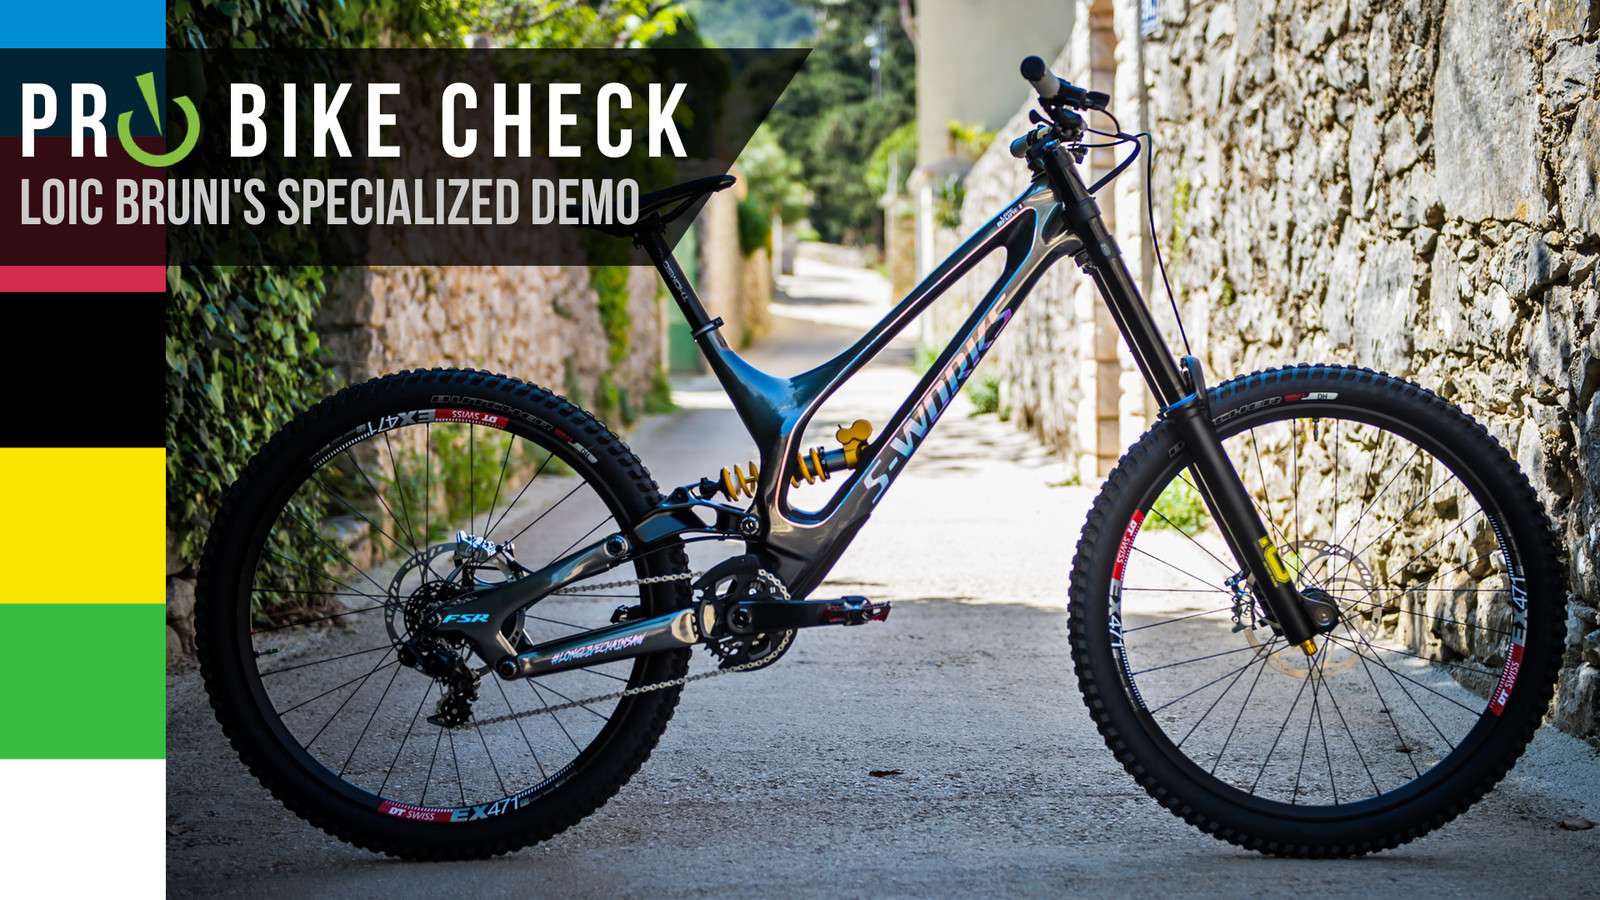 Pro Bike Check: Loic Bruni's Specialized Demo